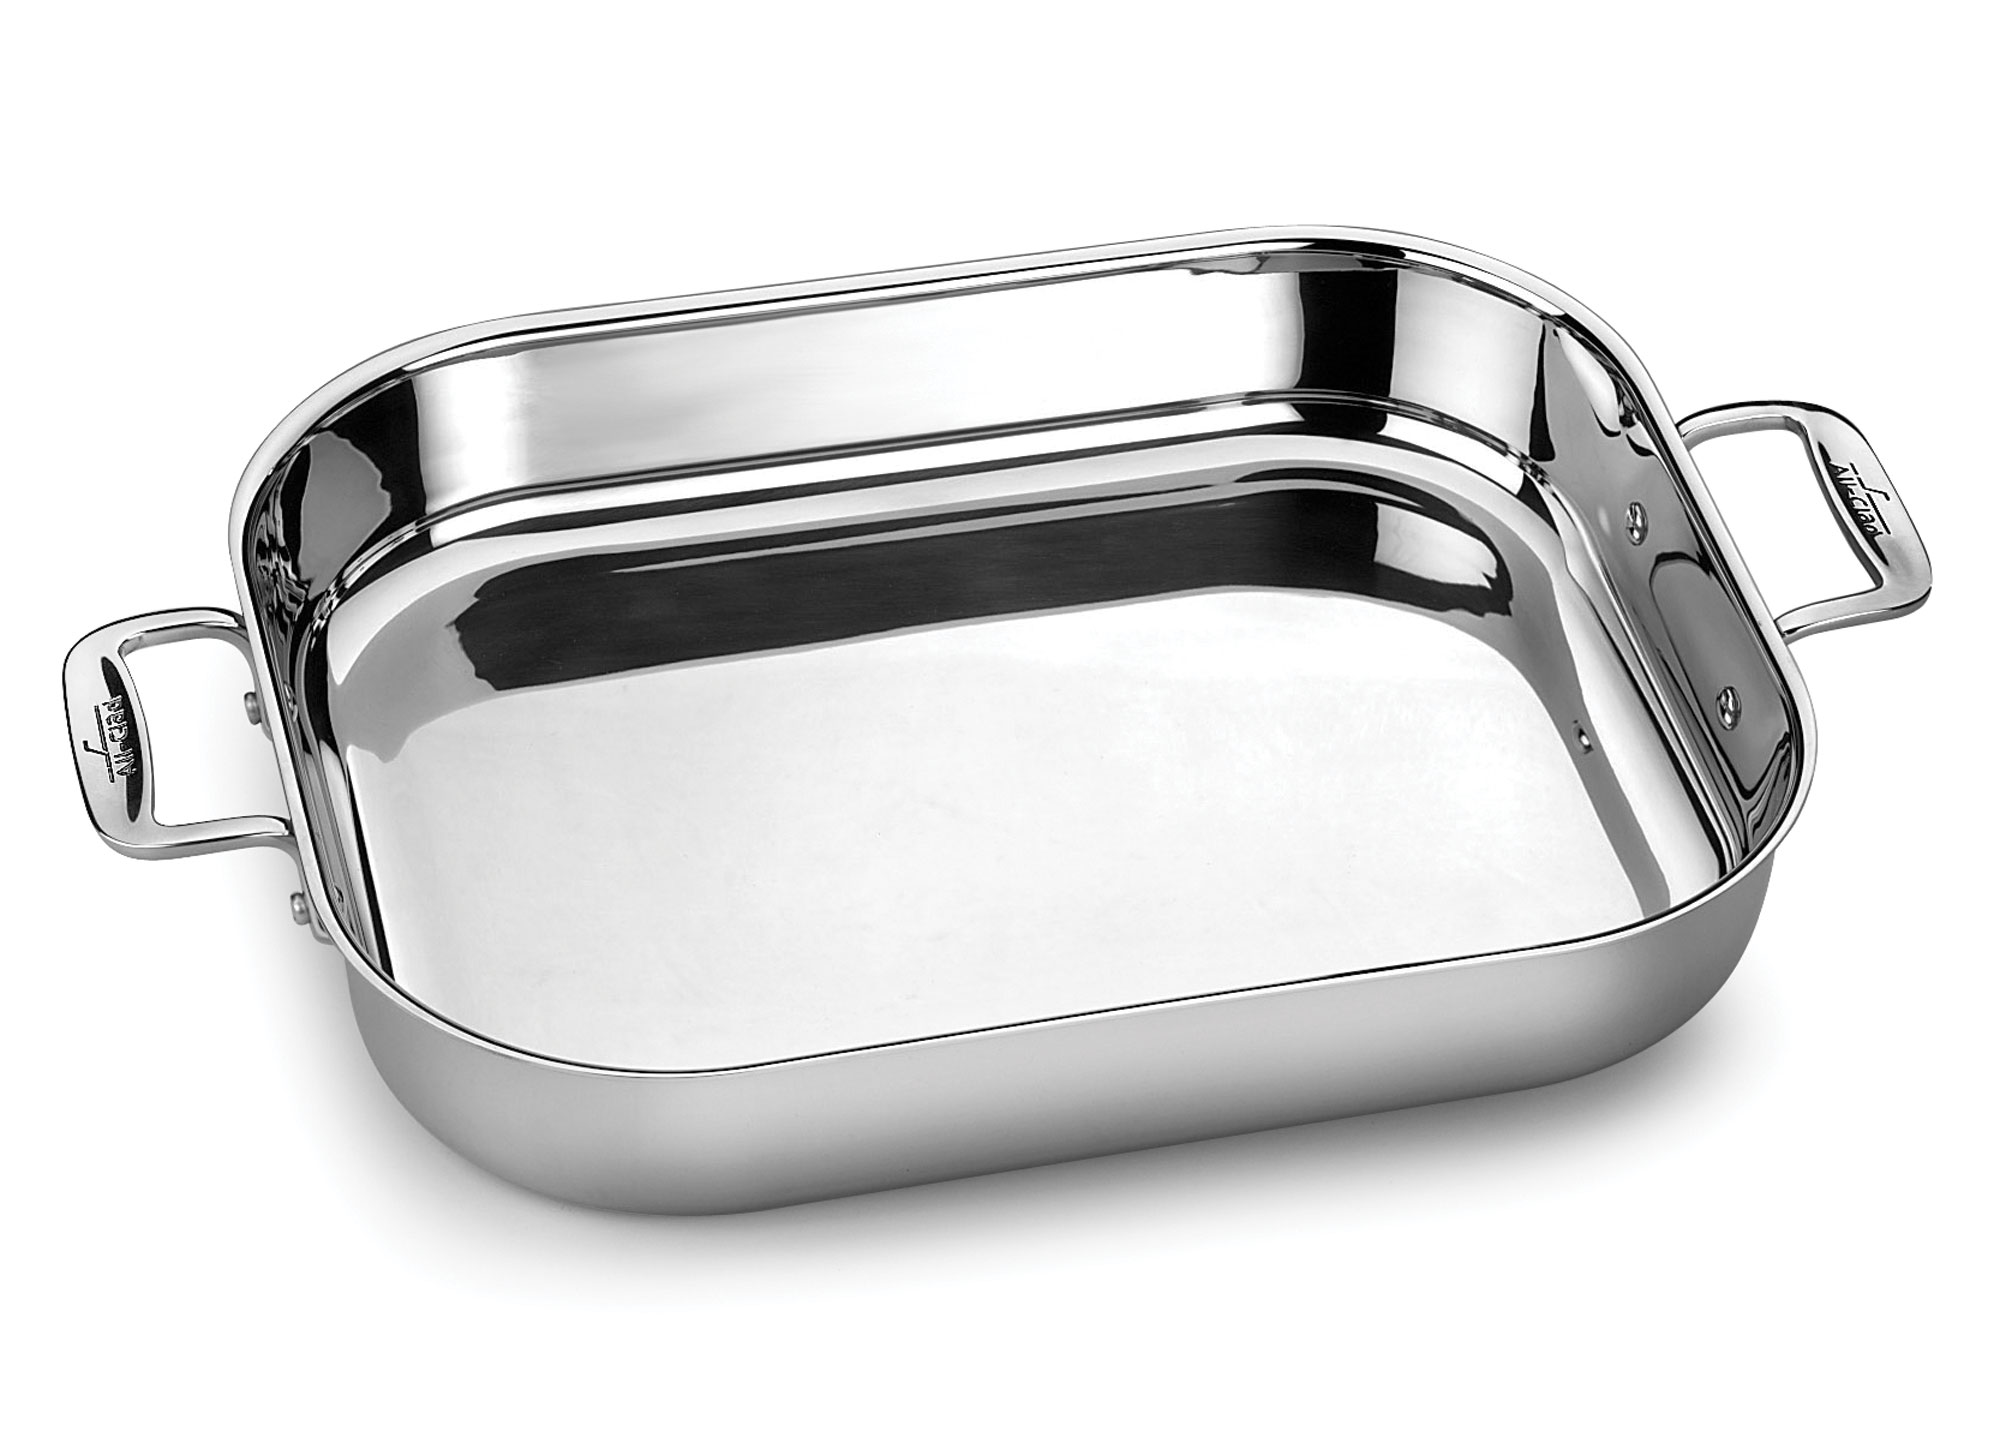 All Clad Stainless Steel Lasagna Pan 14 5 X 11 75 X 2 5